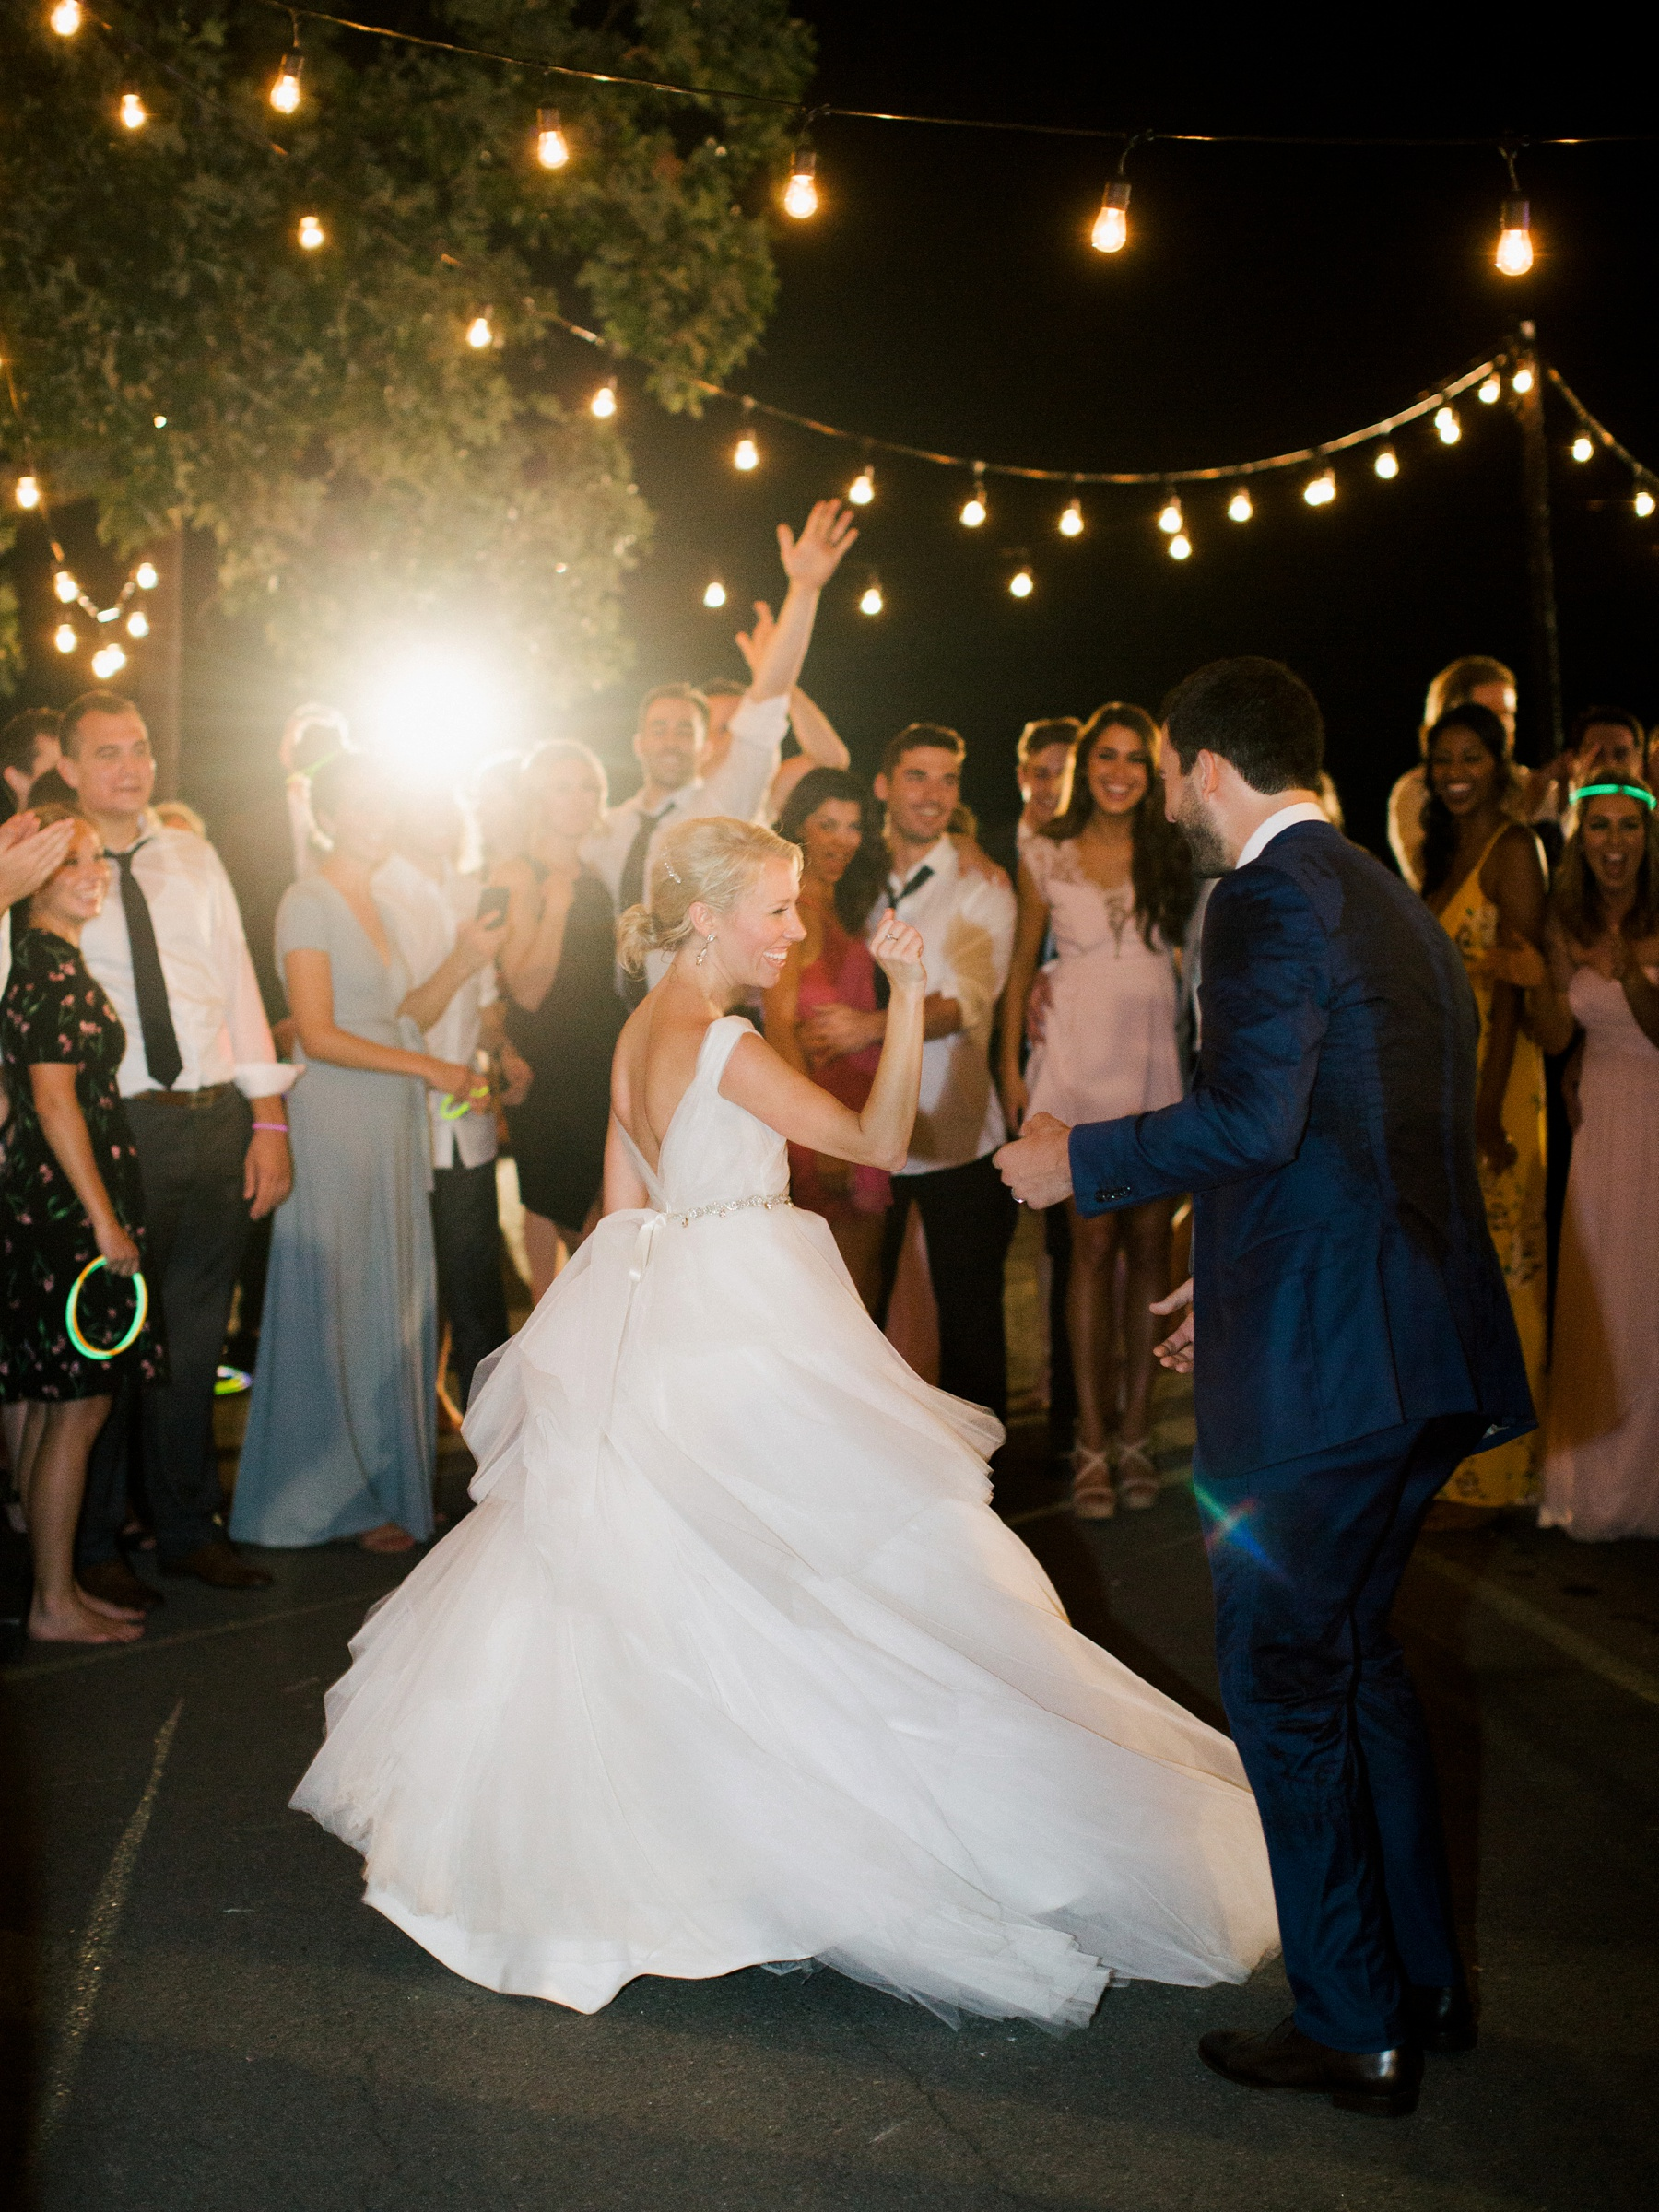 CMT Music City Jessica Mack and Andreas Plackis Wedding_1559.jpg